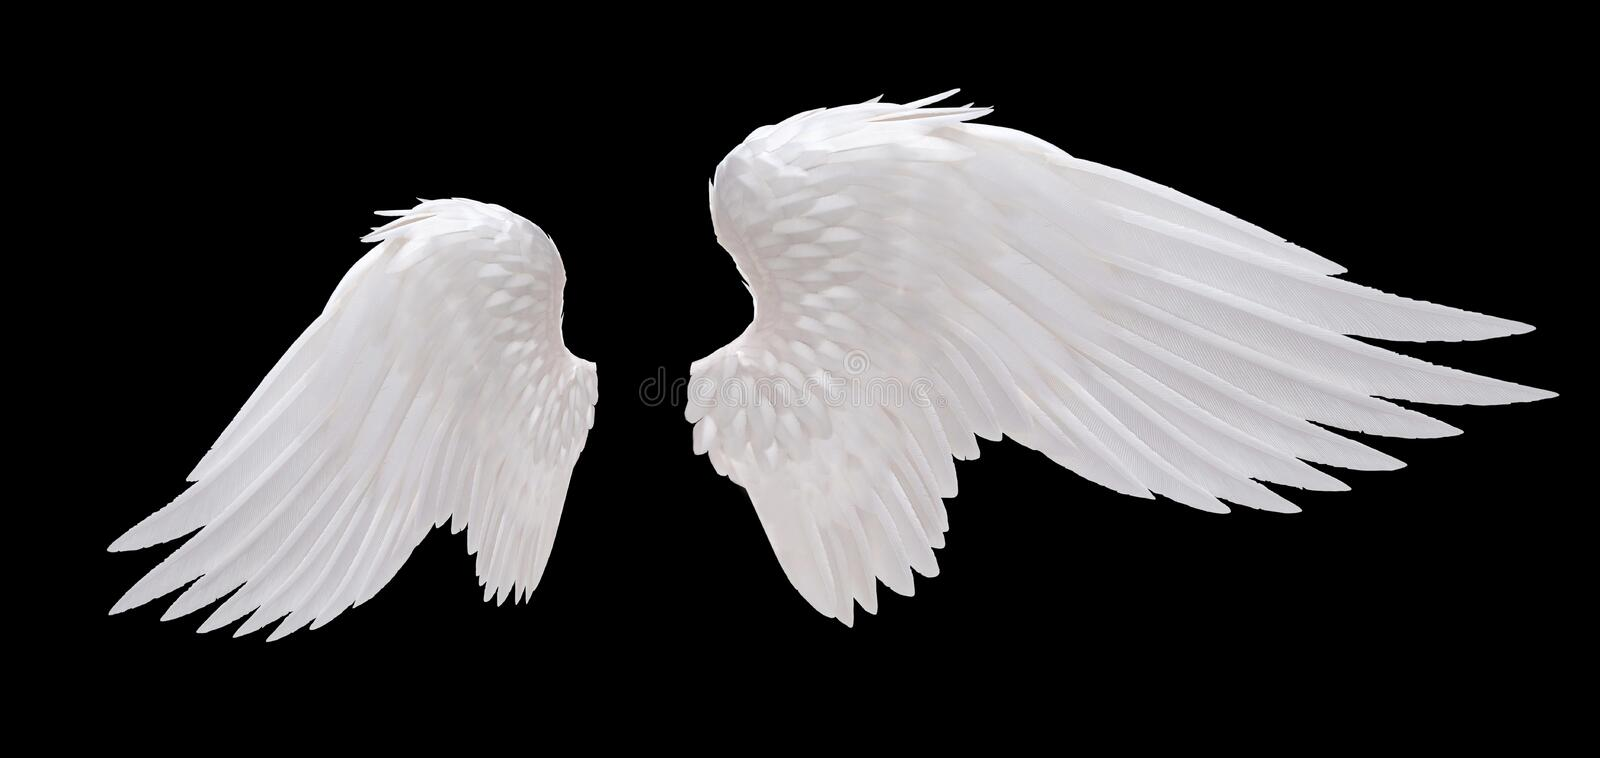 White angel wing royalty free stock photos